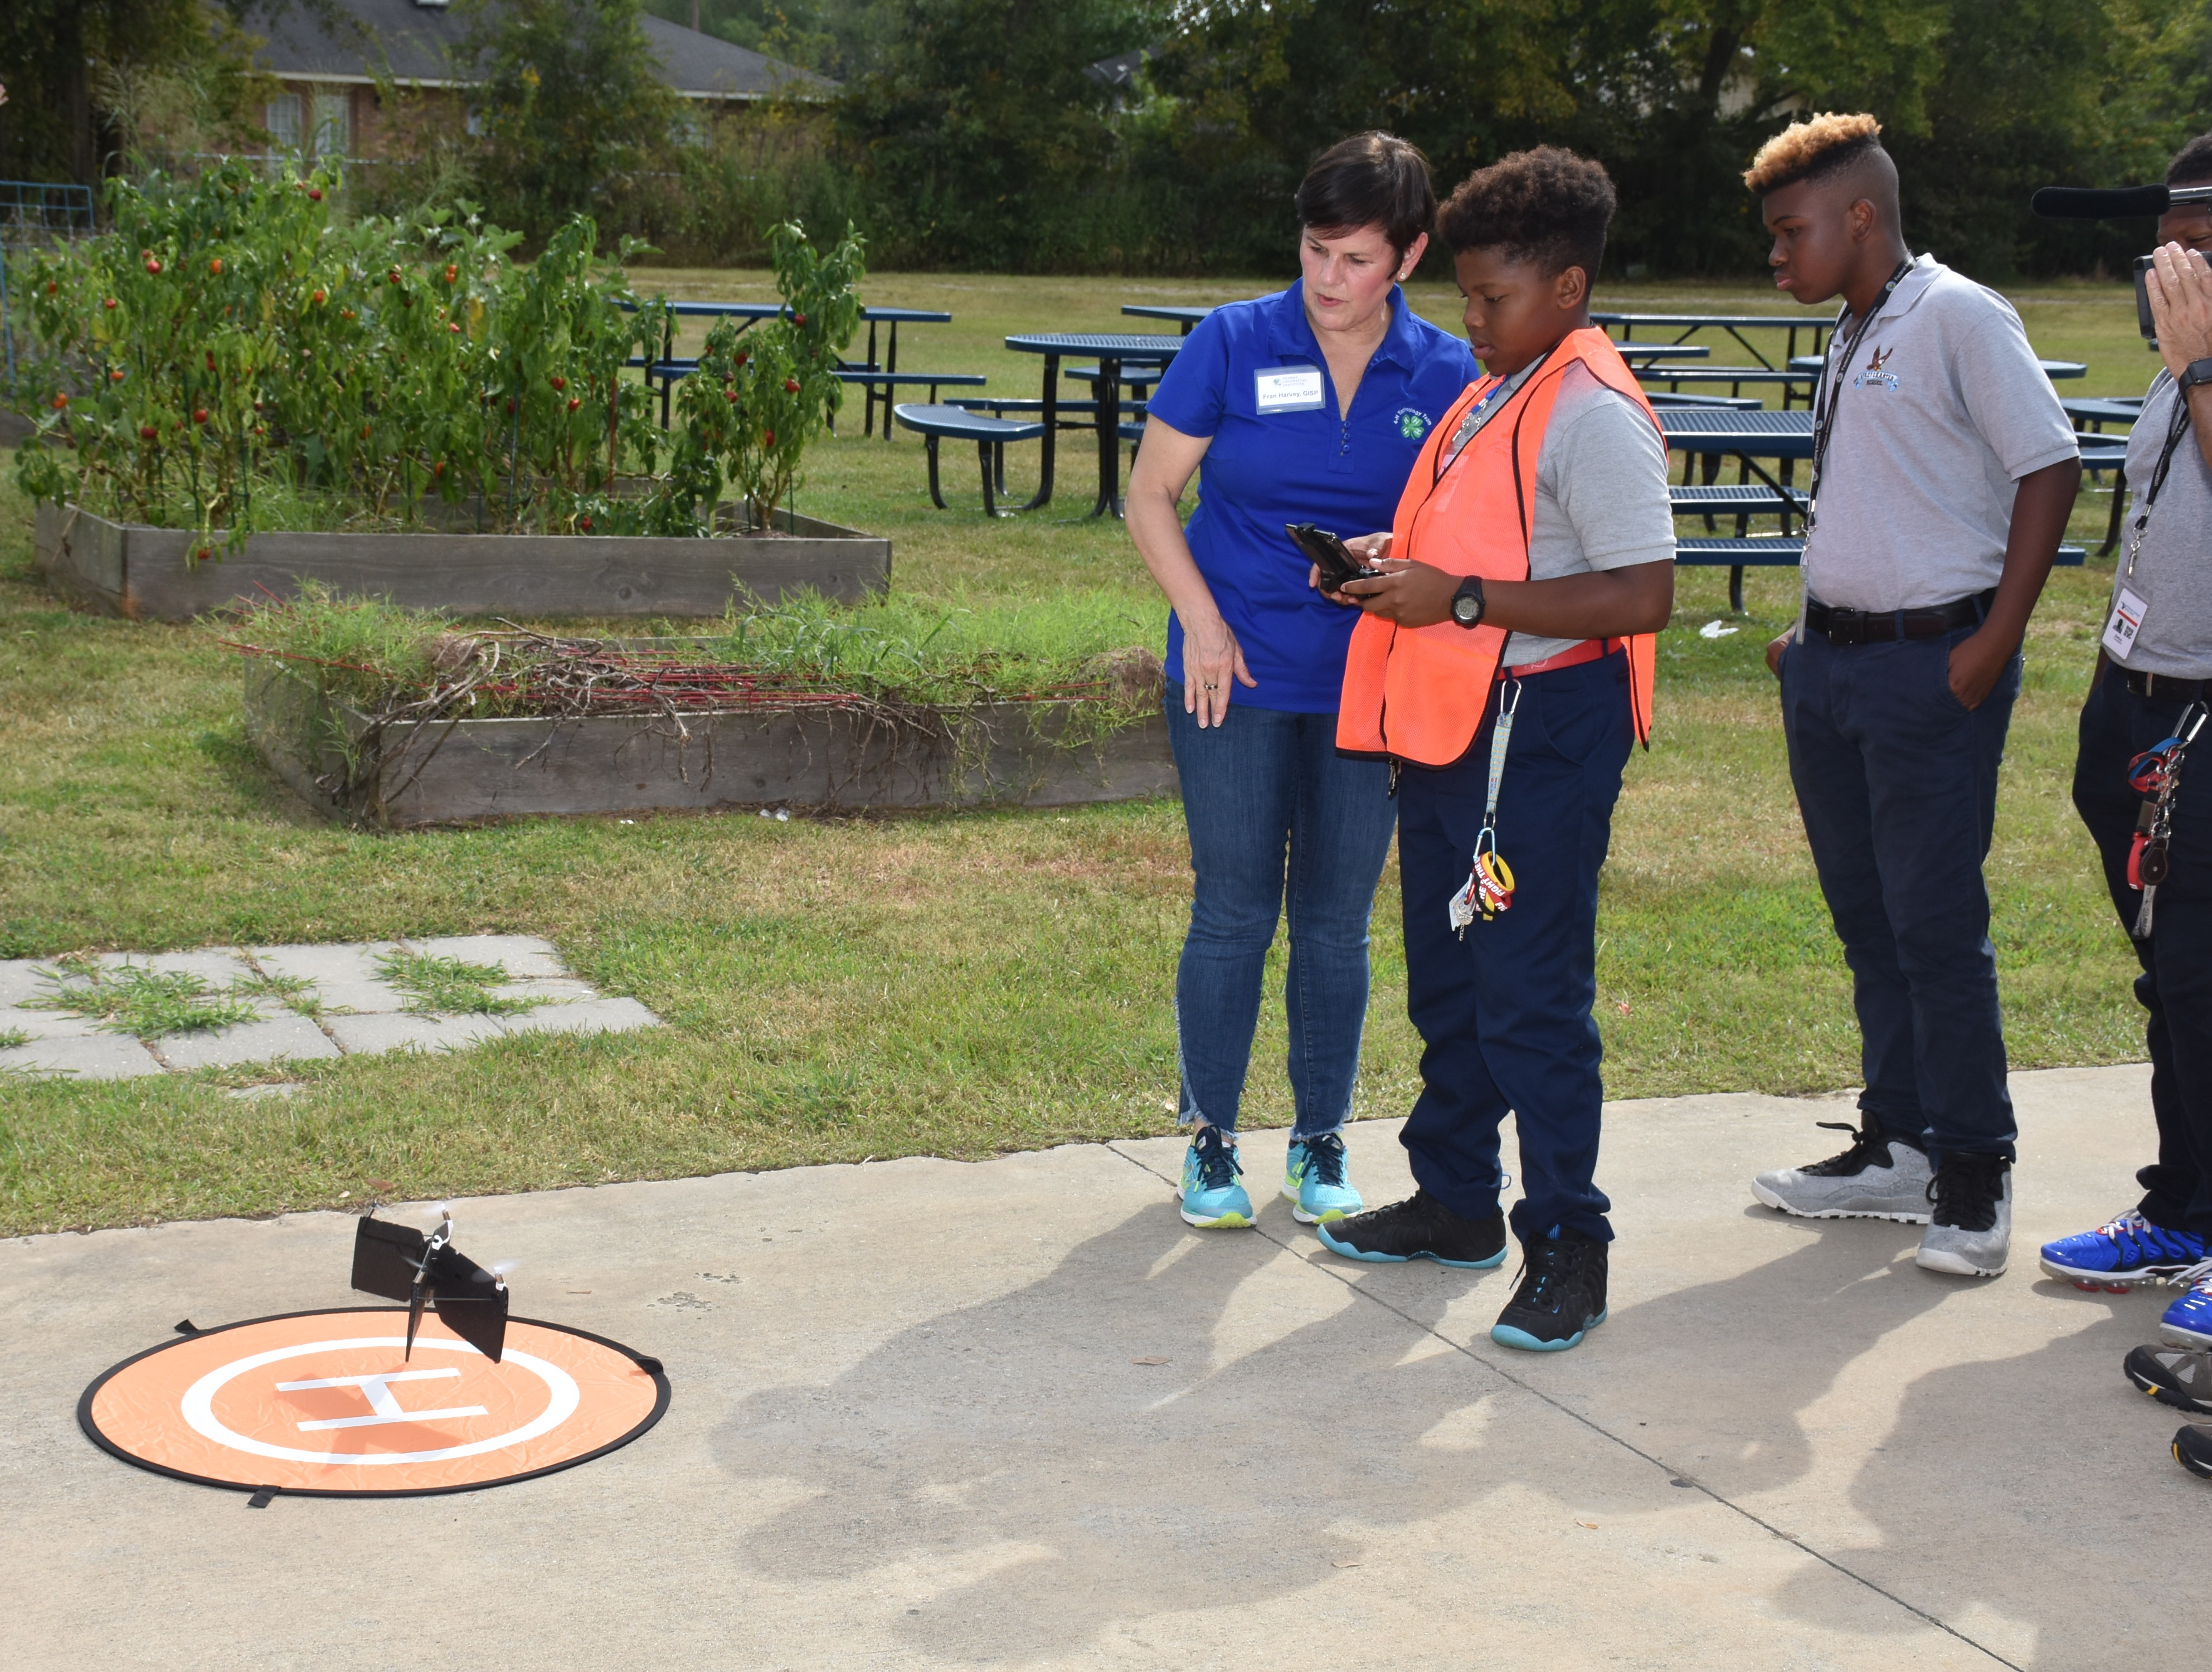 4-Hers flying a drone .JPG thumbnail